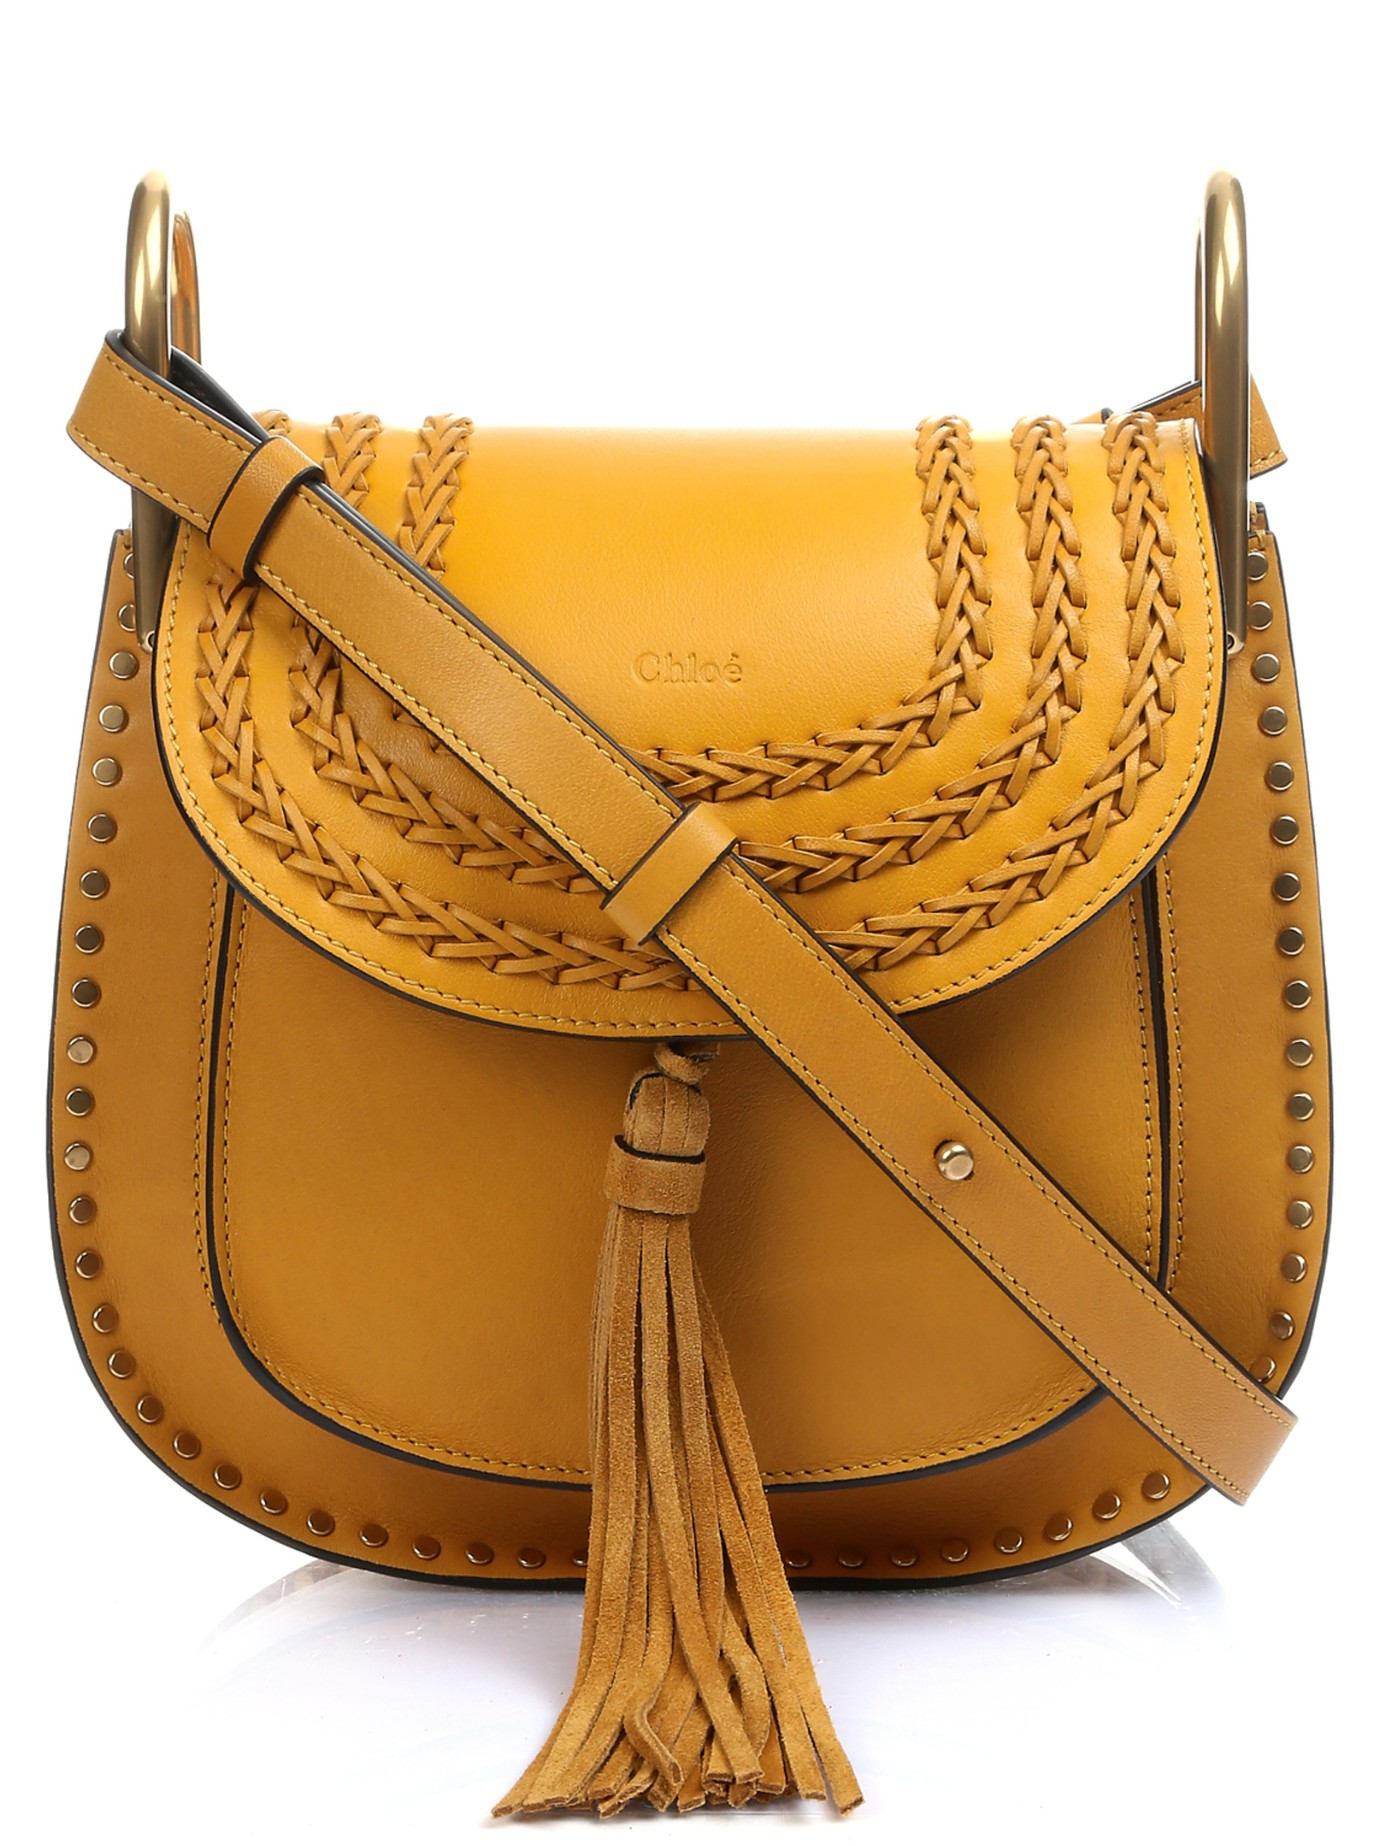 ecfda62d819 Chloé Hudson Small Leather Cross-Body Bag in Yellow - Lyst